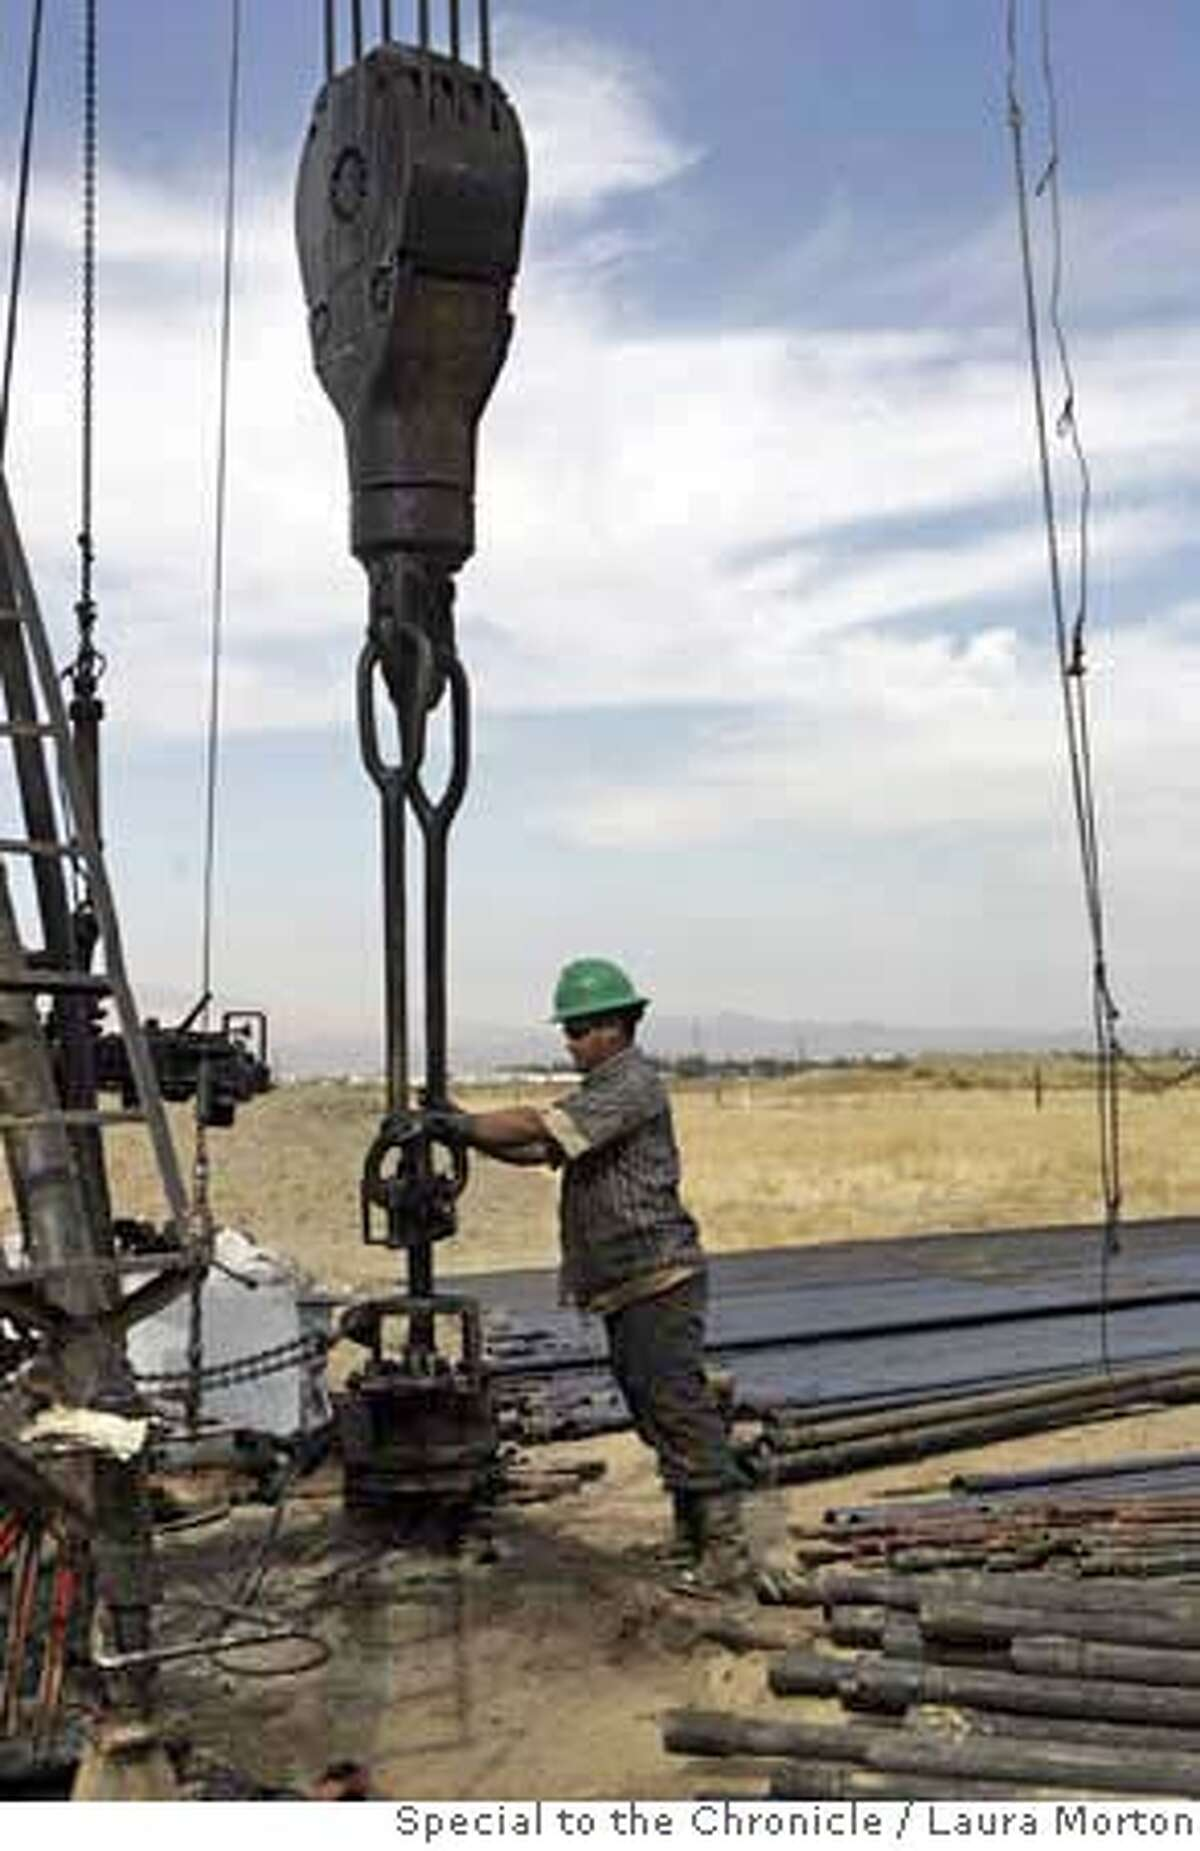 Carlos Sandoval works on completing a new well in the oil fields of Coalinga, CA. California is America's fourth-largest oil producing state. Prop 87, which would put a new tax on oil production, could affect the state's oil industry, particularly smaller independent producers.